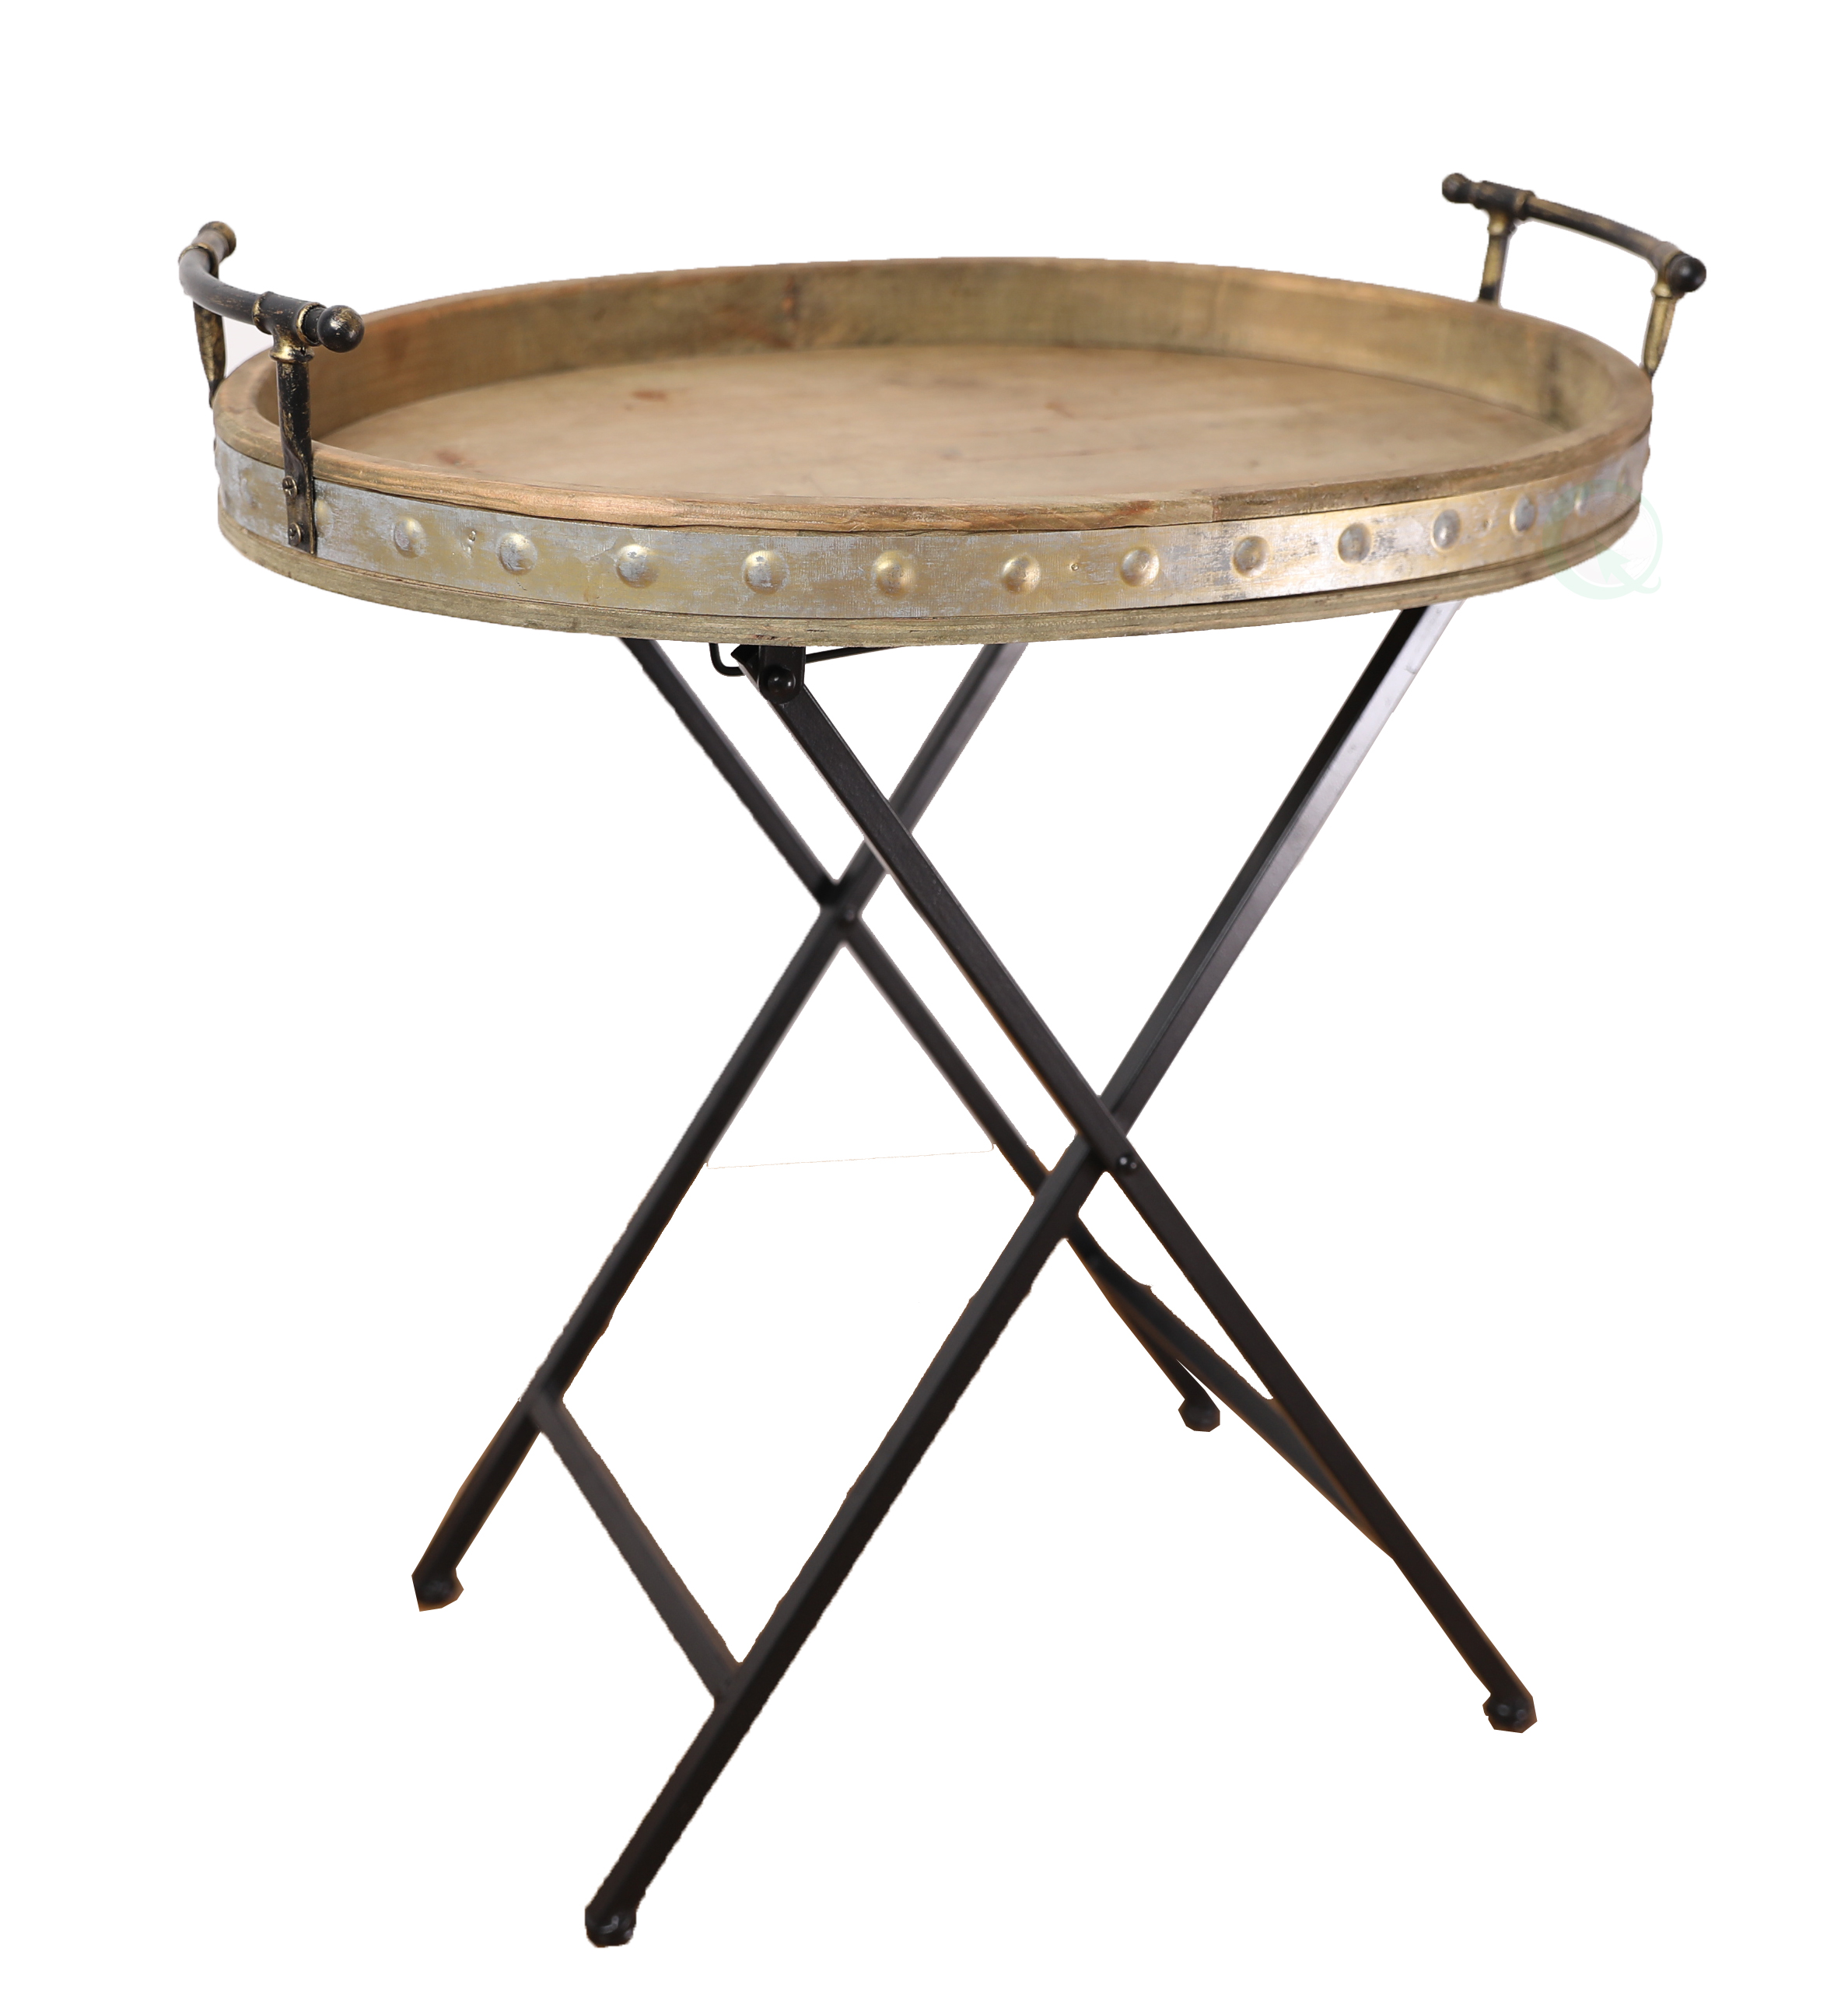 Details about Wood Metal Serving Tray w/ Stand Folding Snack Table Round  Rustic Outdoor Brown